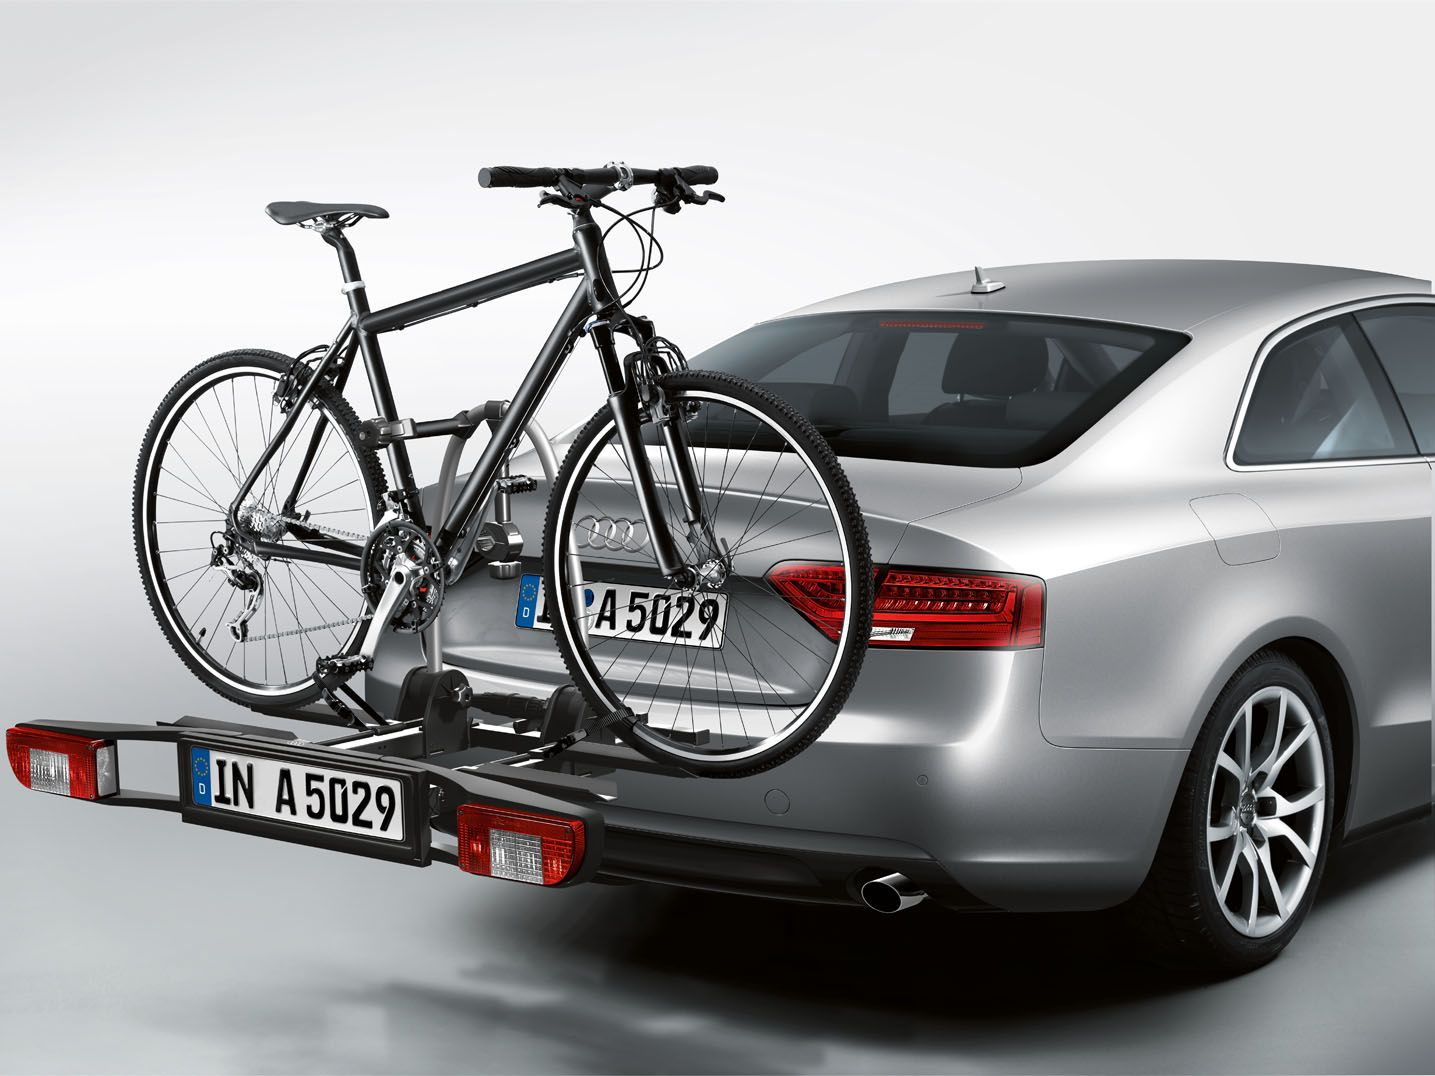 Audi rear bike rack which is easy to load and unload available here http